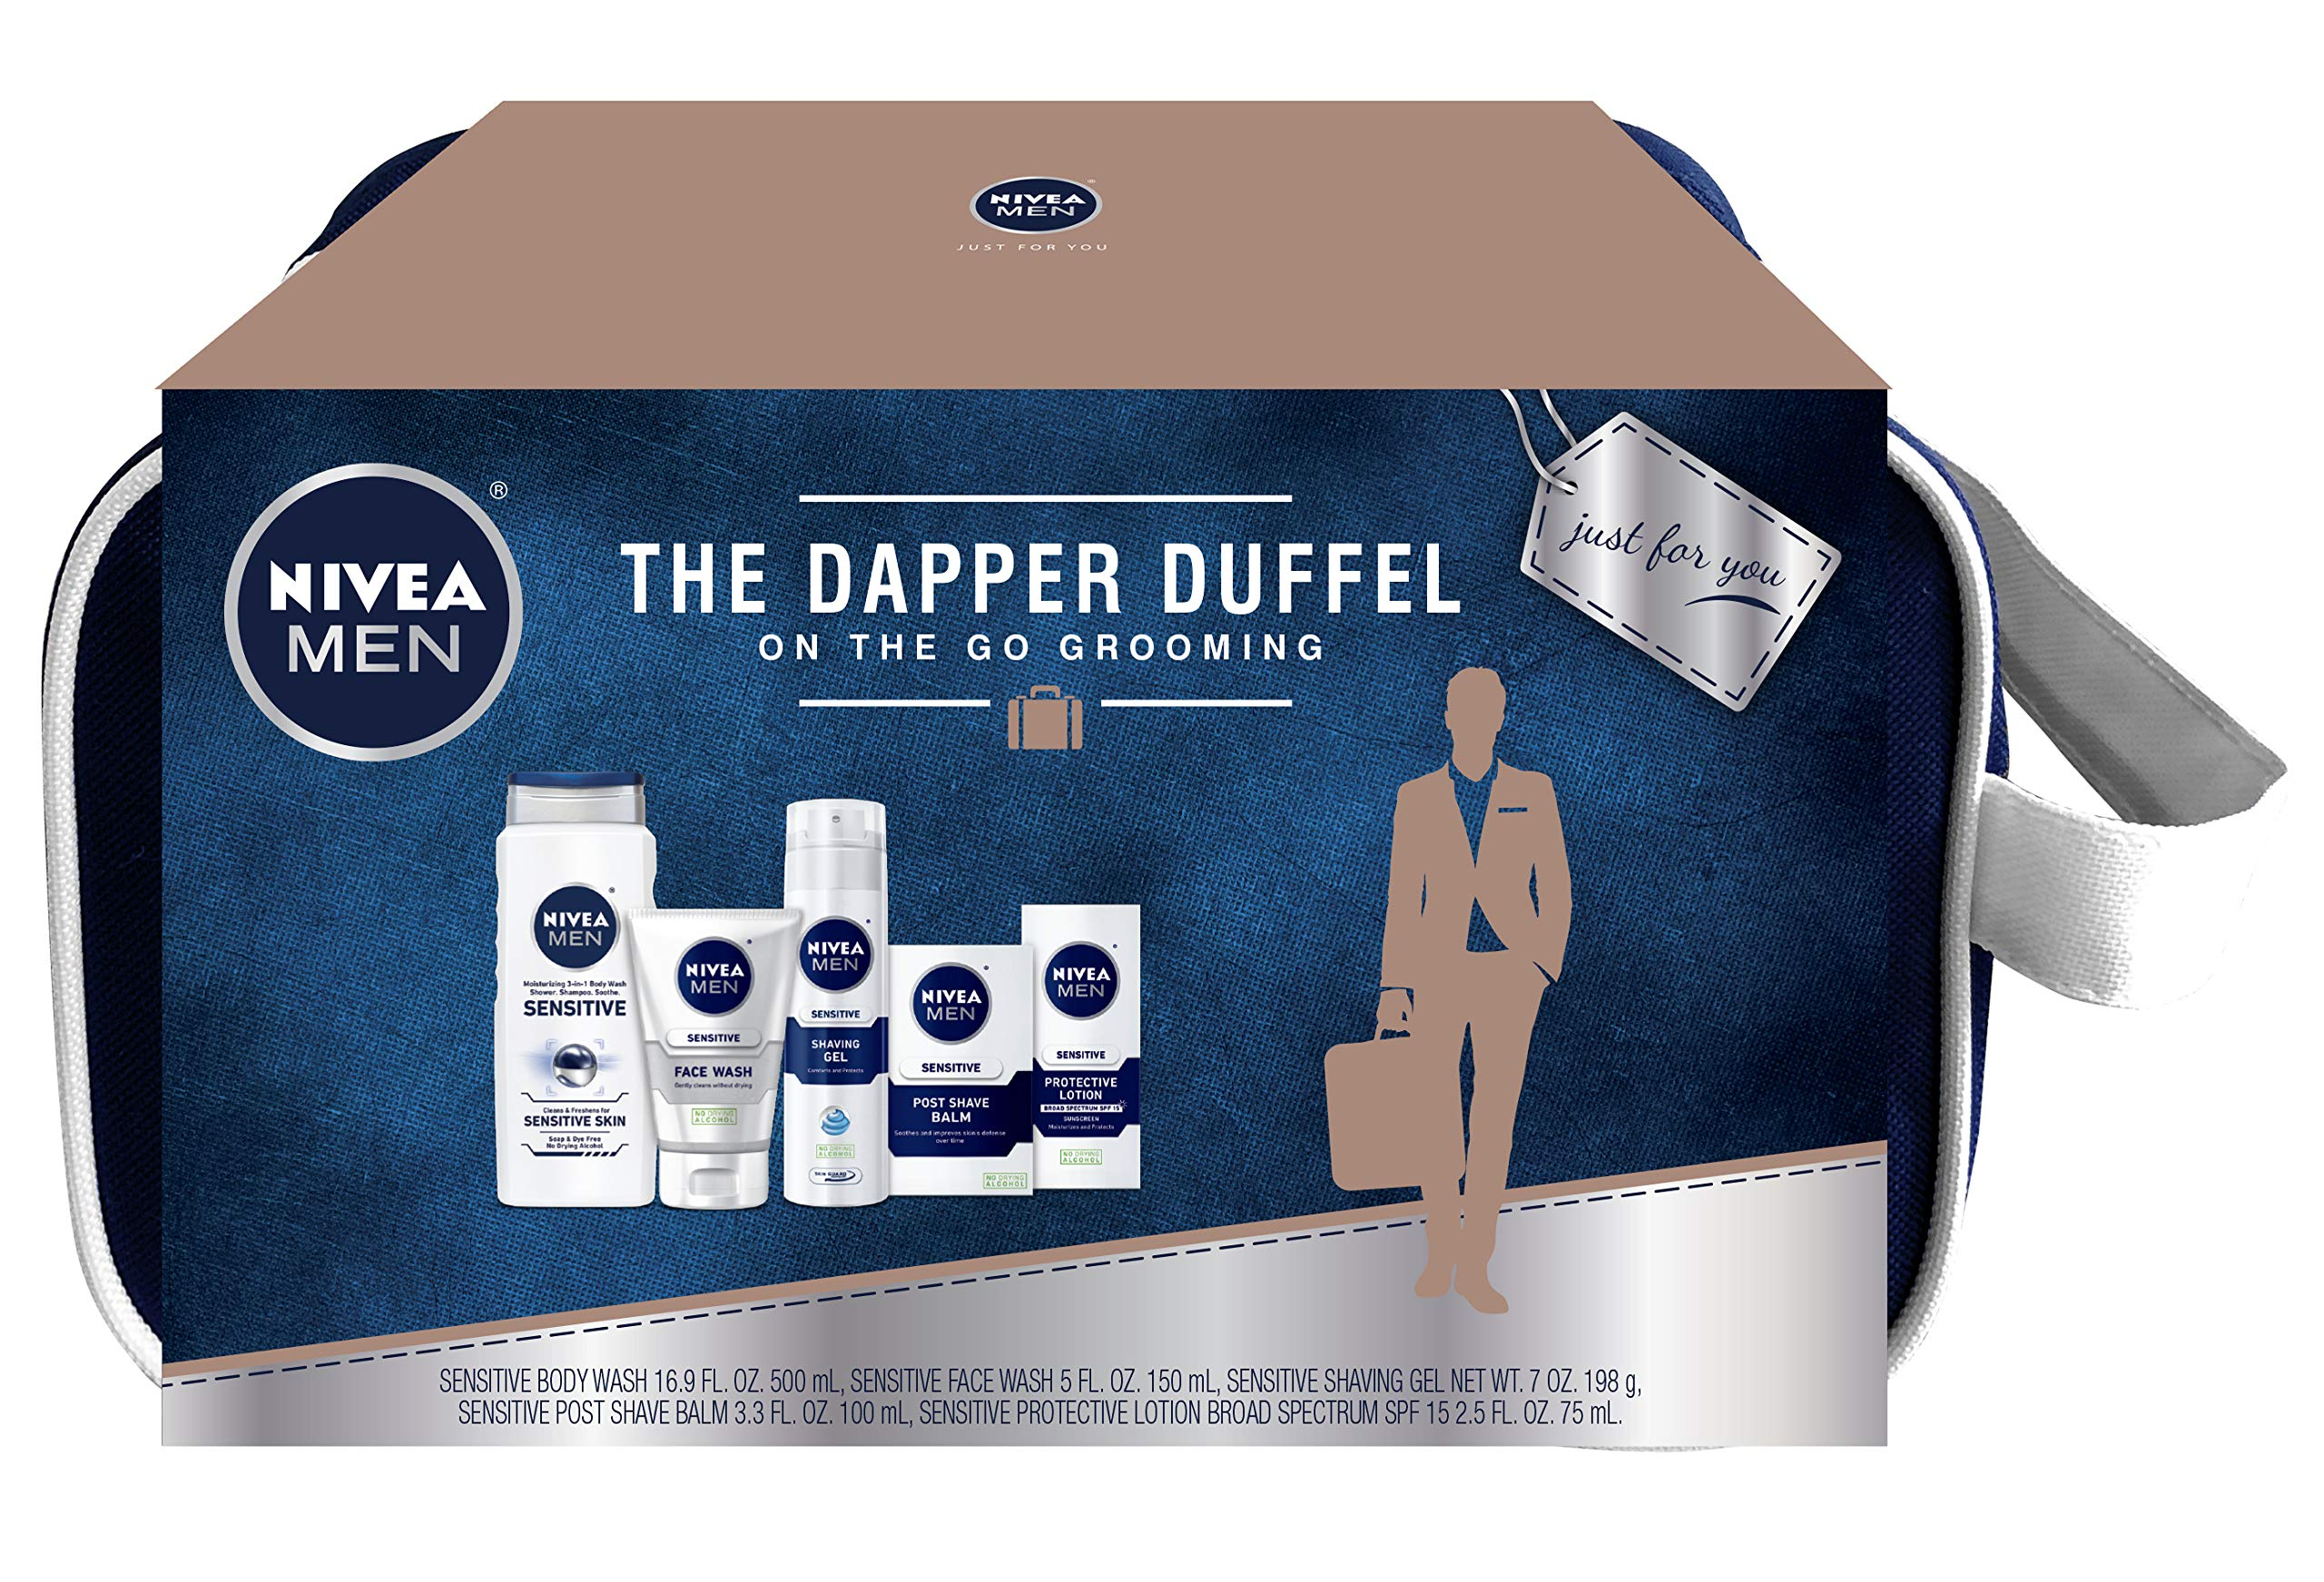 NIVEA Men Dapper Duffel Gift Set - 5 Piece Collection Of On-The-Go Grooming Needs with Travel Bag Included by Nivea Men